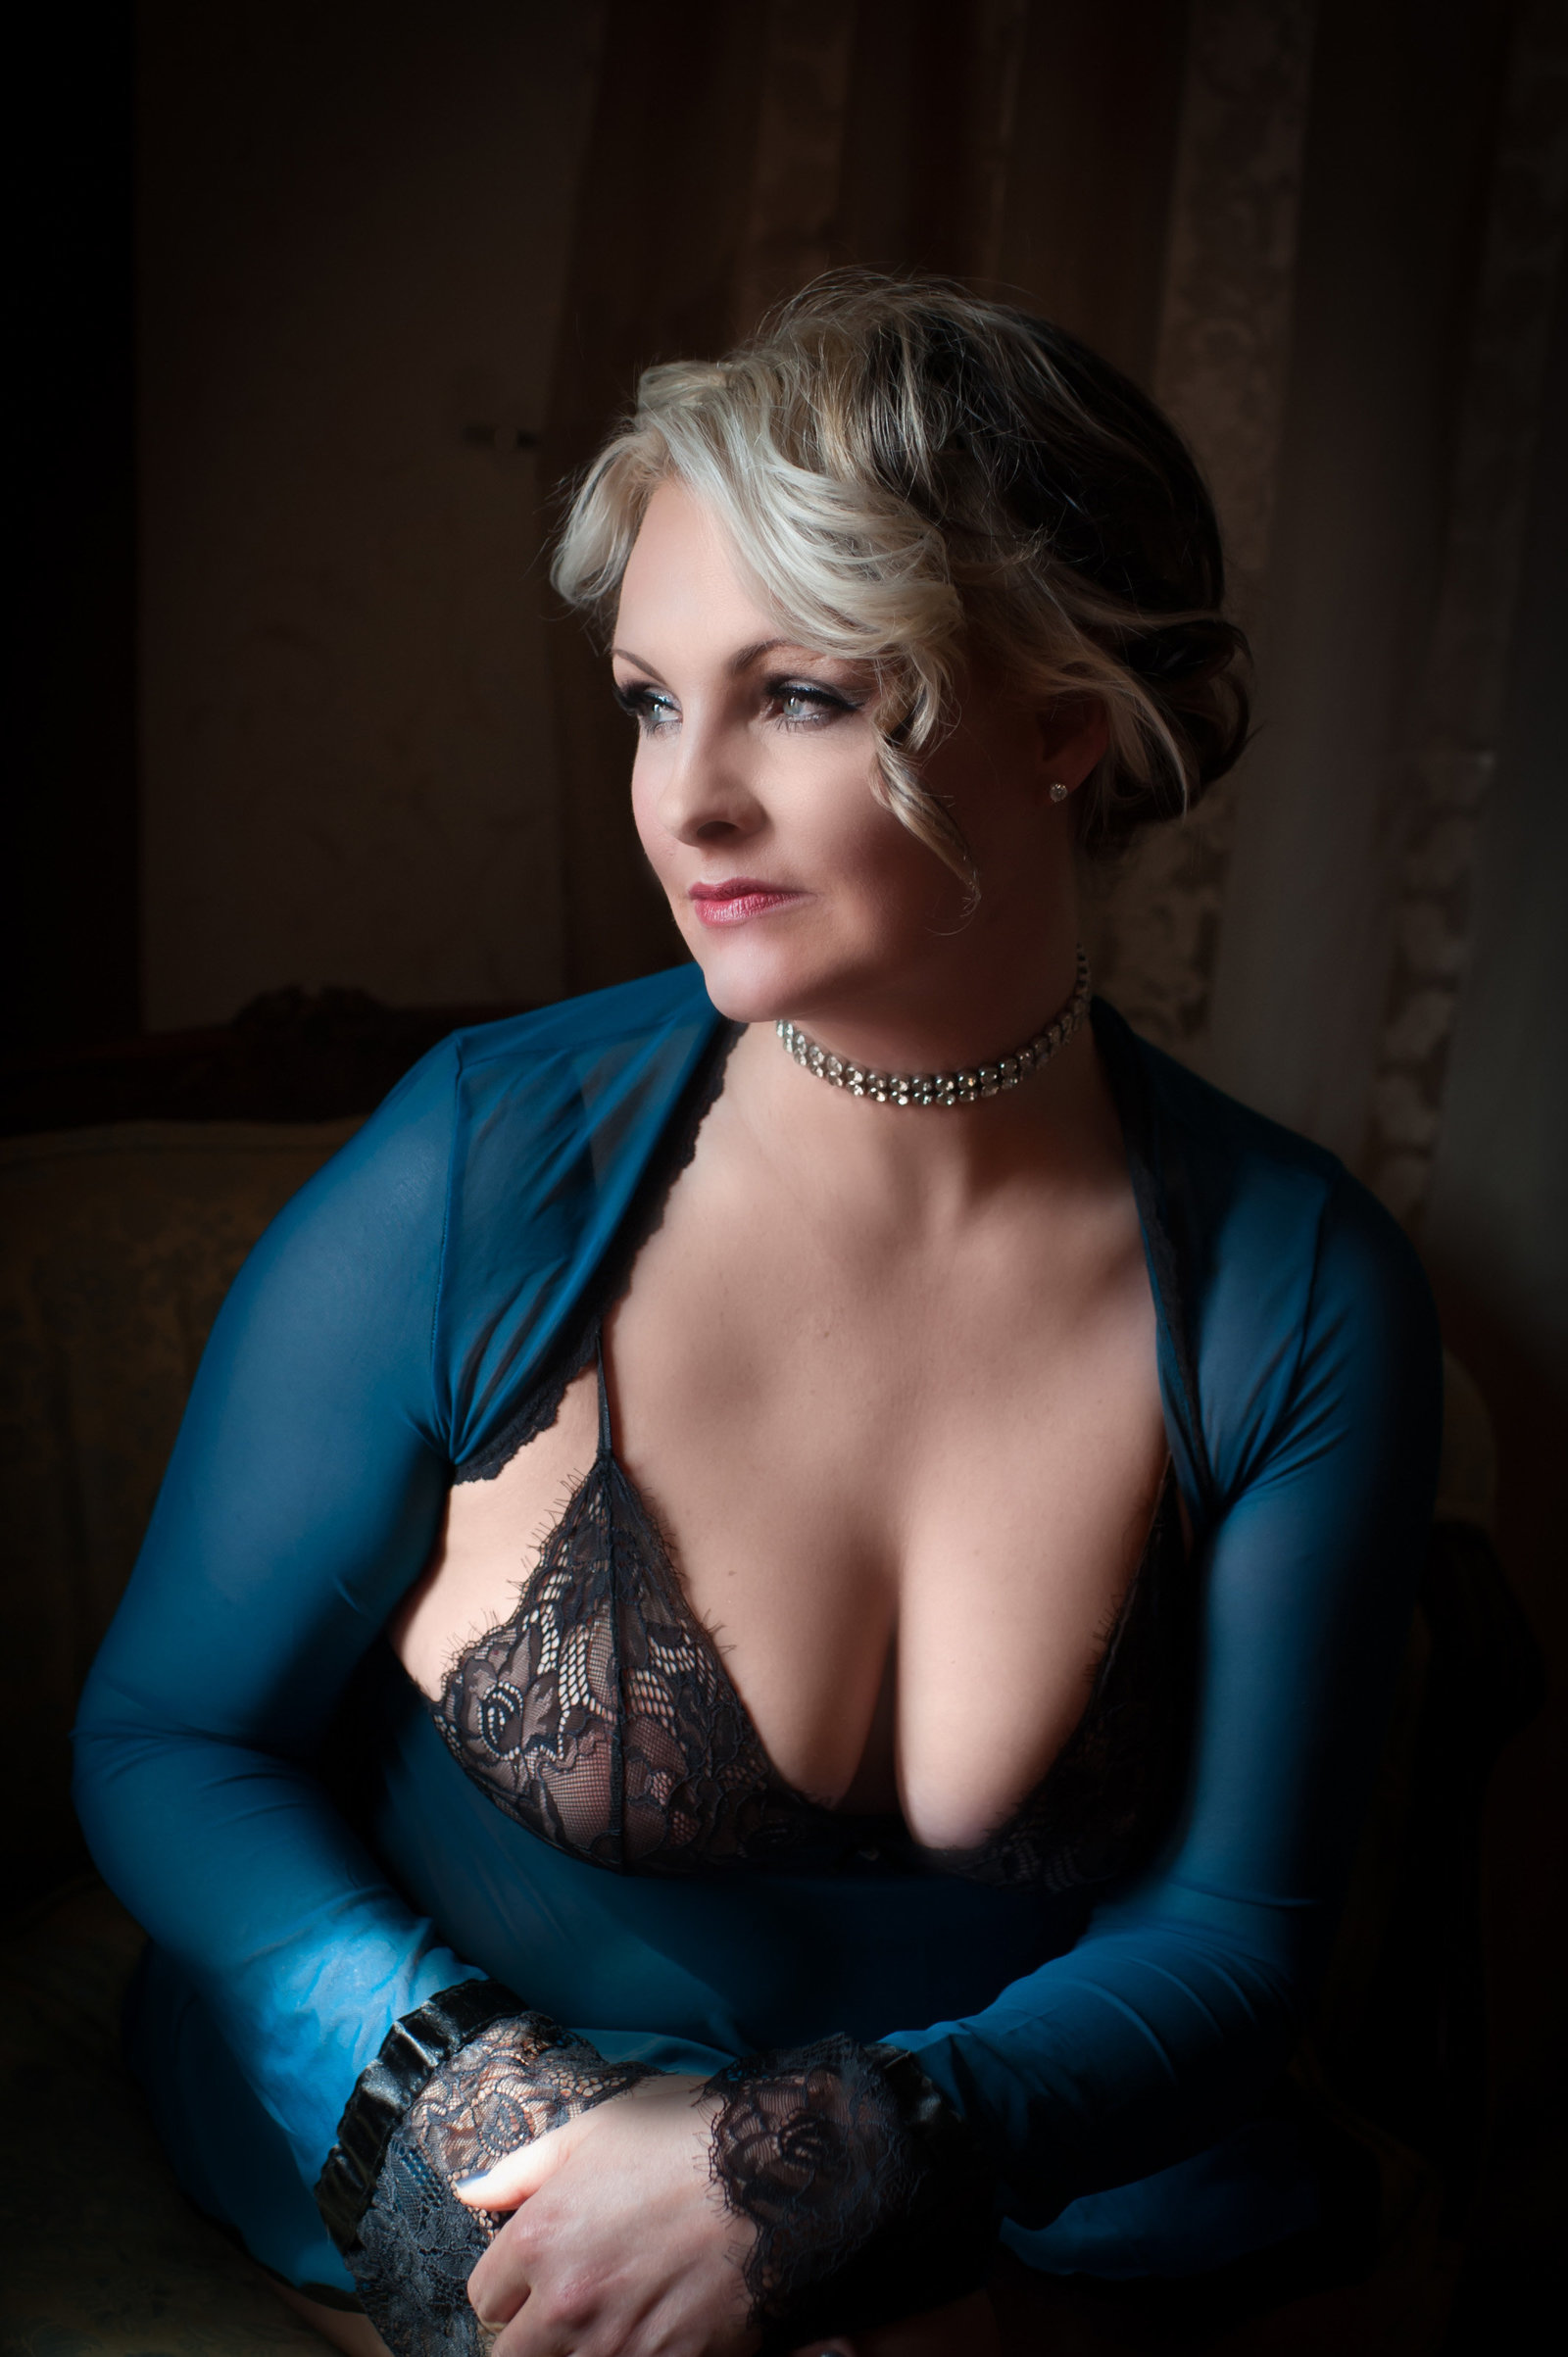 minneapolis-boudoir-photography-380